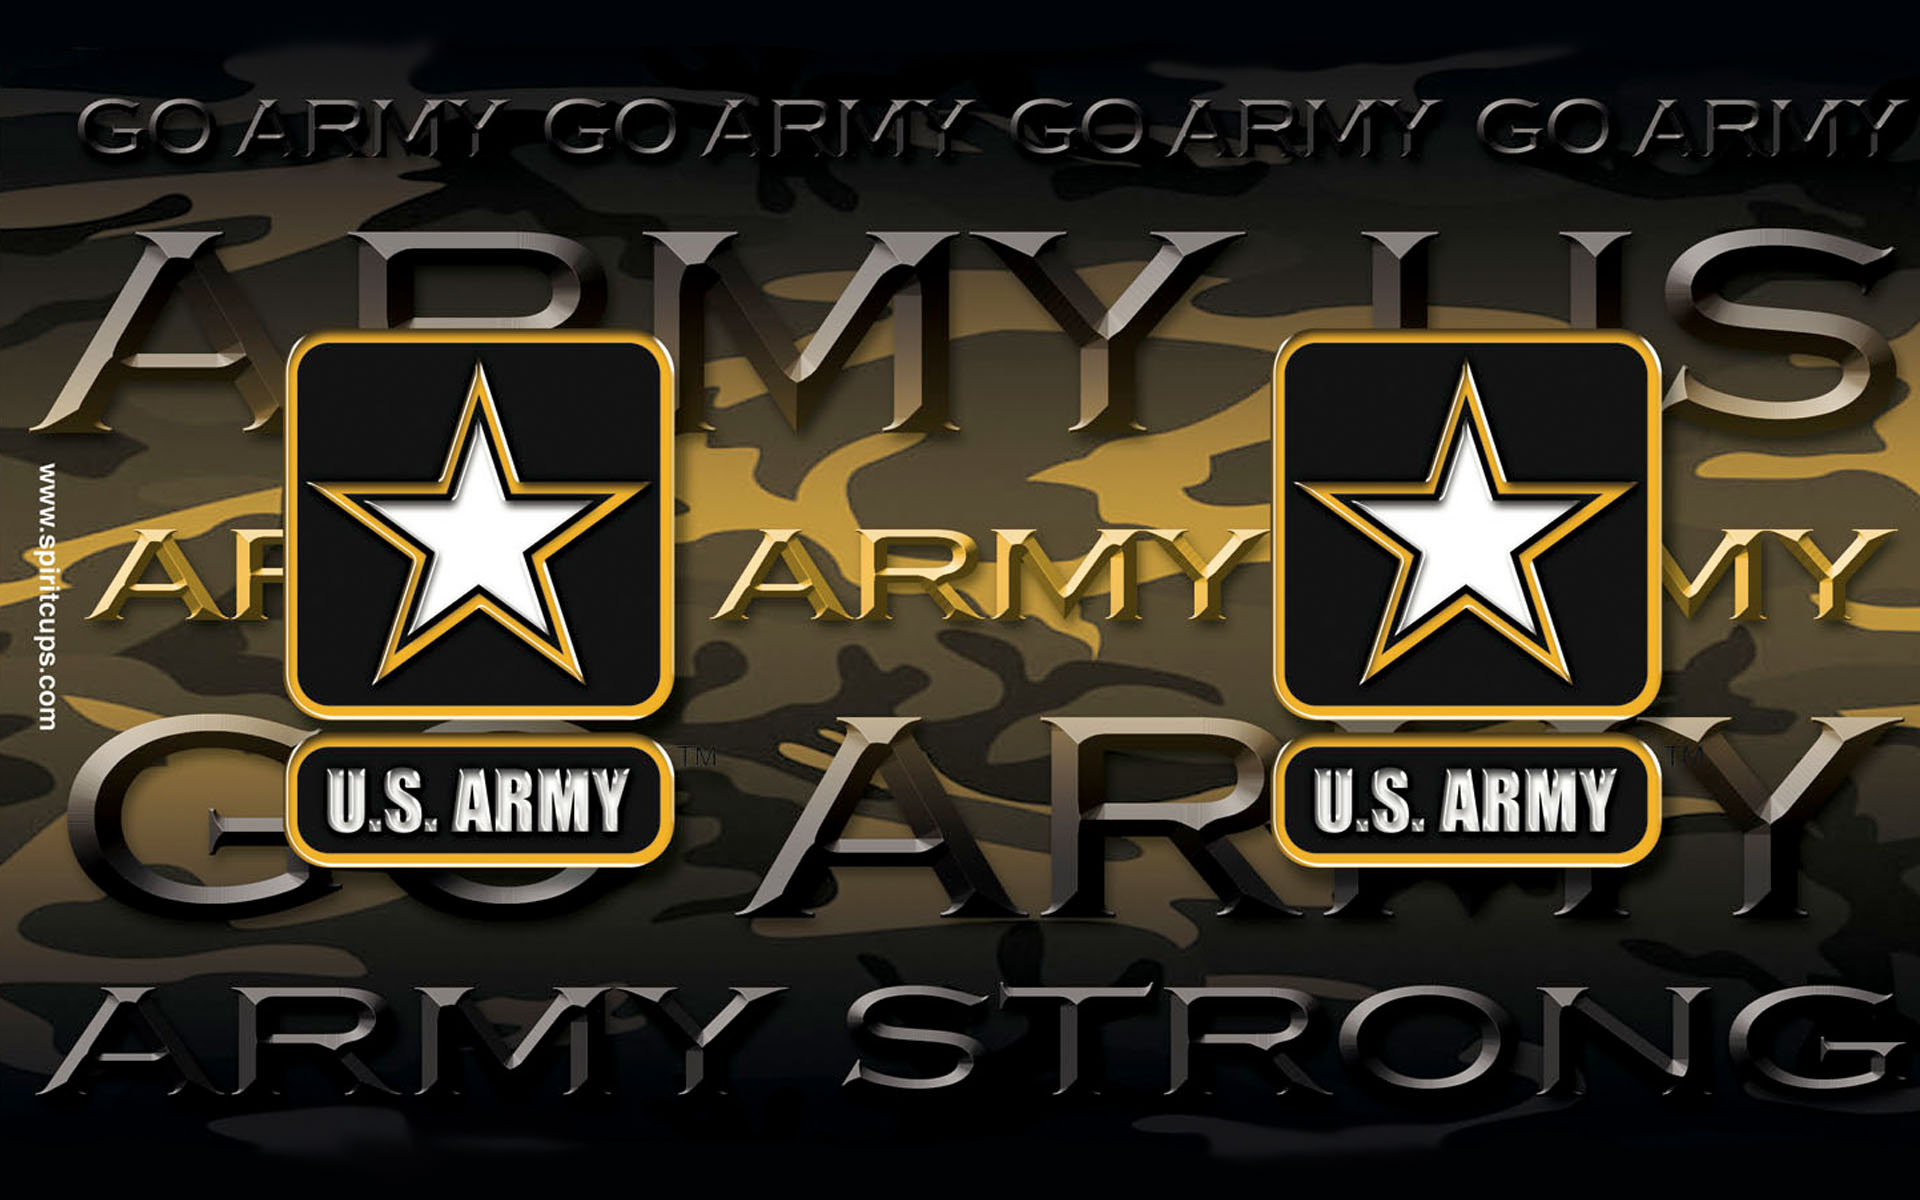 Free Download Pics Photos Us Army Wallpaper Backgrounds Www